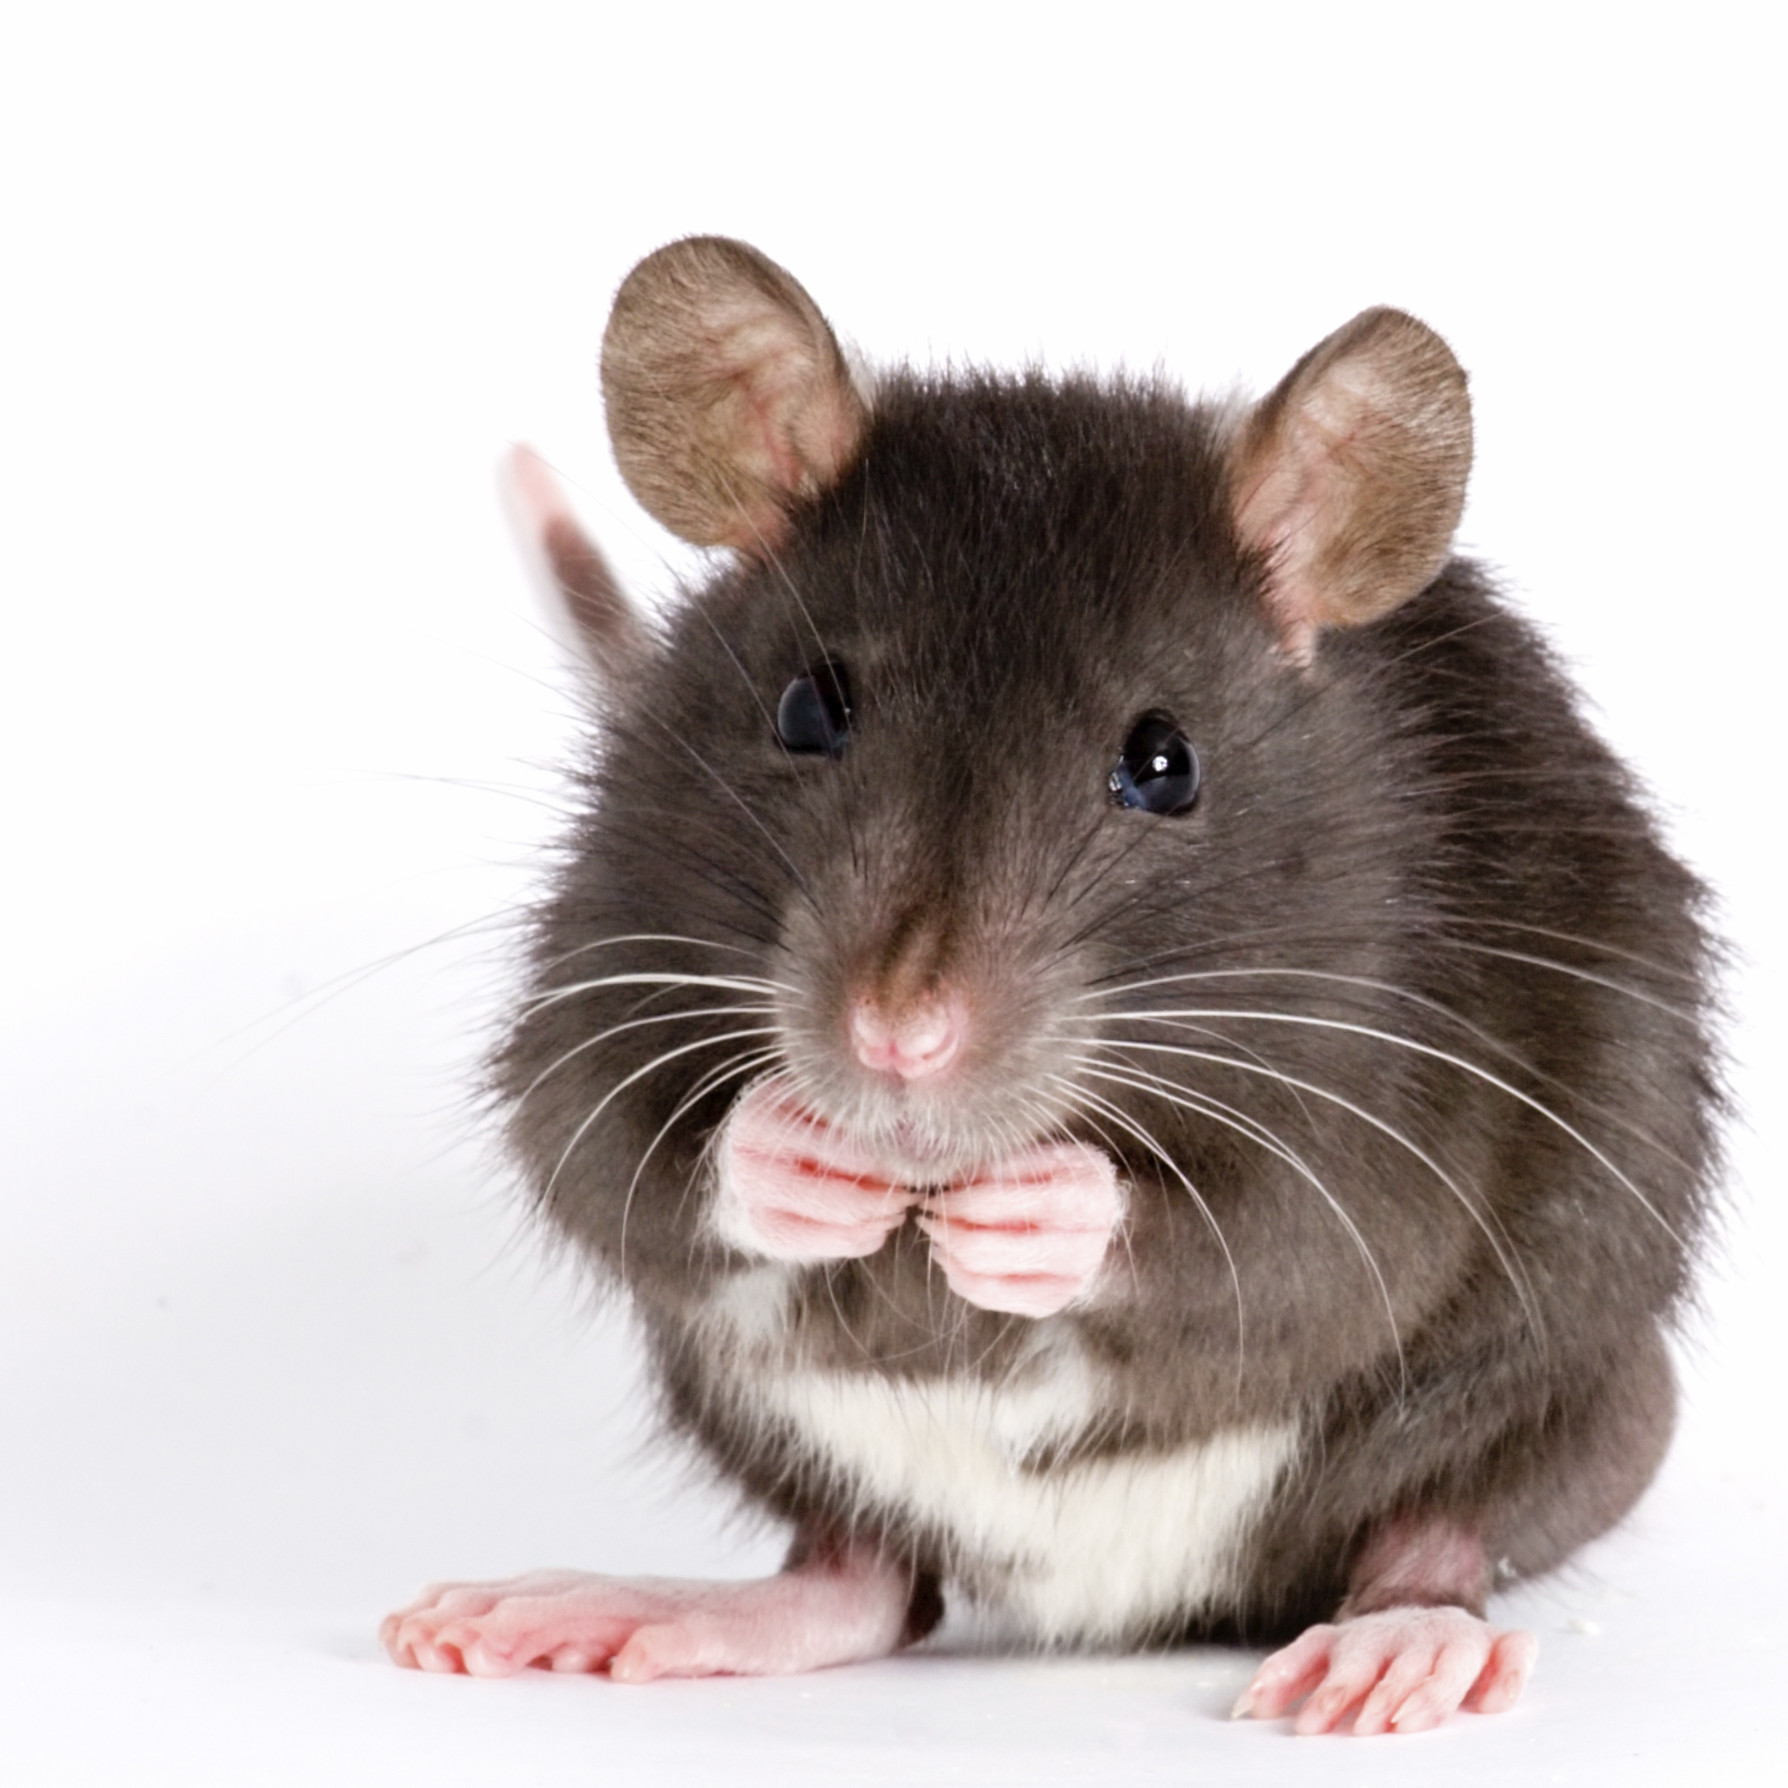 Rats and Mice can cause damage to your property, spread disease and if left unchecked can develop into a major infestation